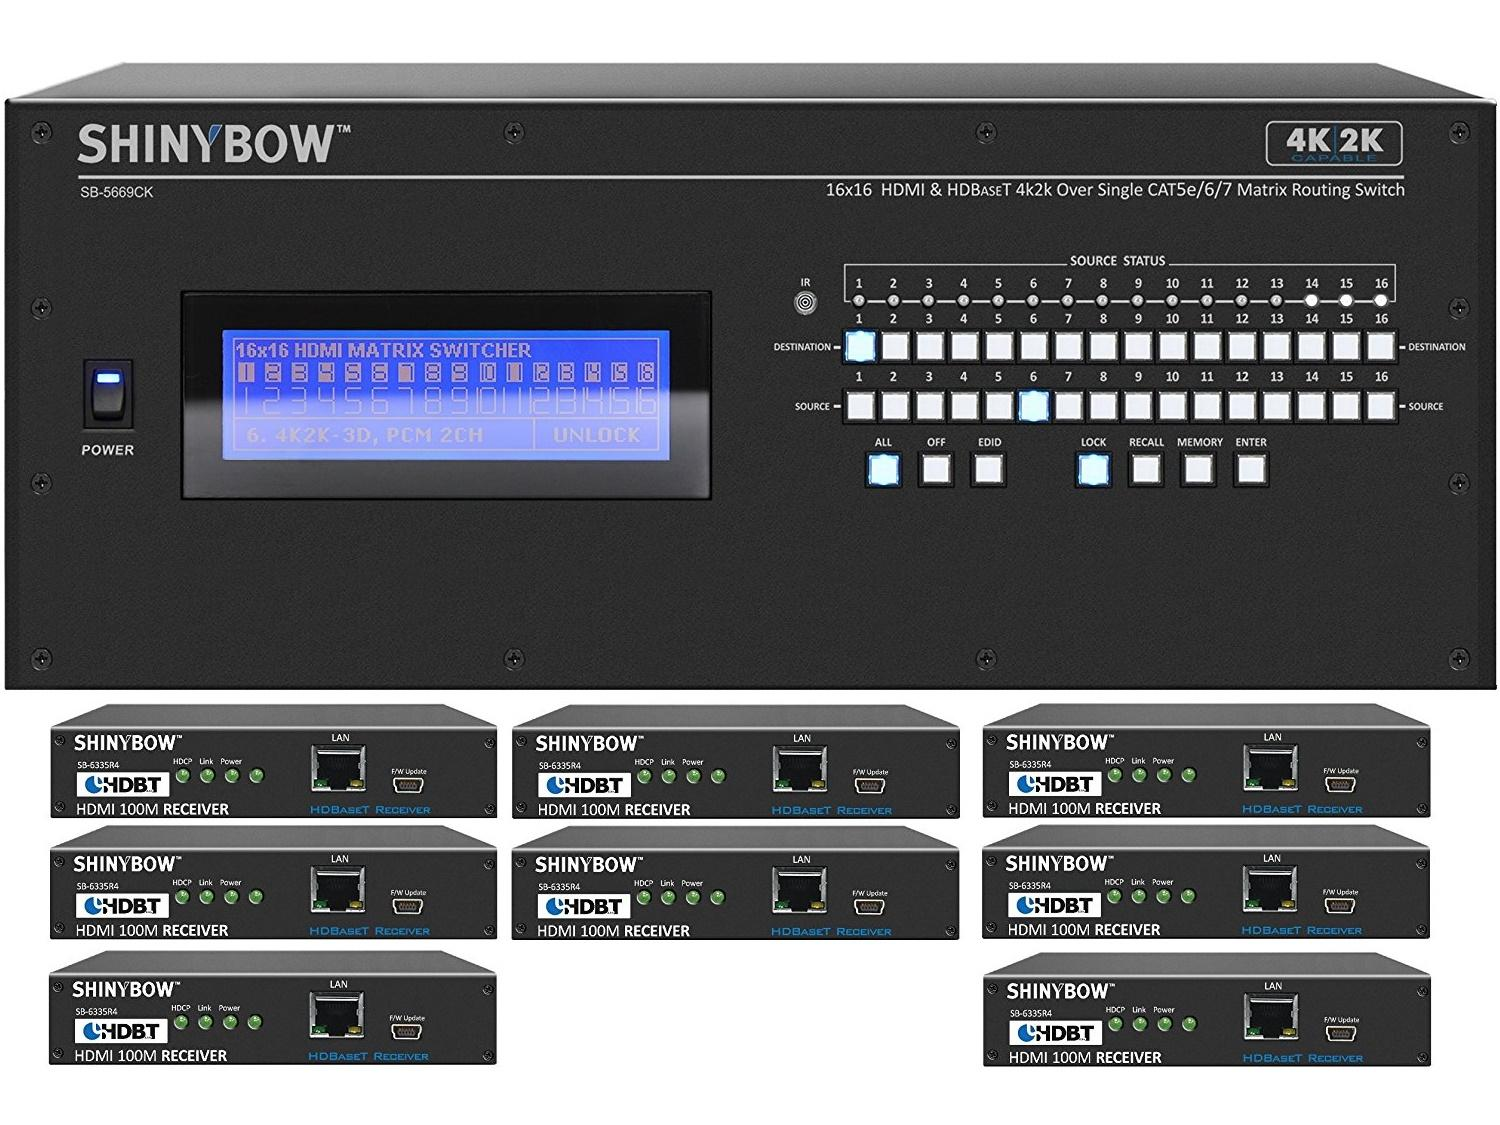 Shinybow SB-5669CK-8x35R4-Kit 16x16 4K UHD HDBaseT Matrix Switcher Kit/1 x SB-5669CK Switch/8 x SB-6335R4 Receivers